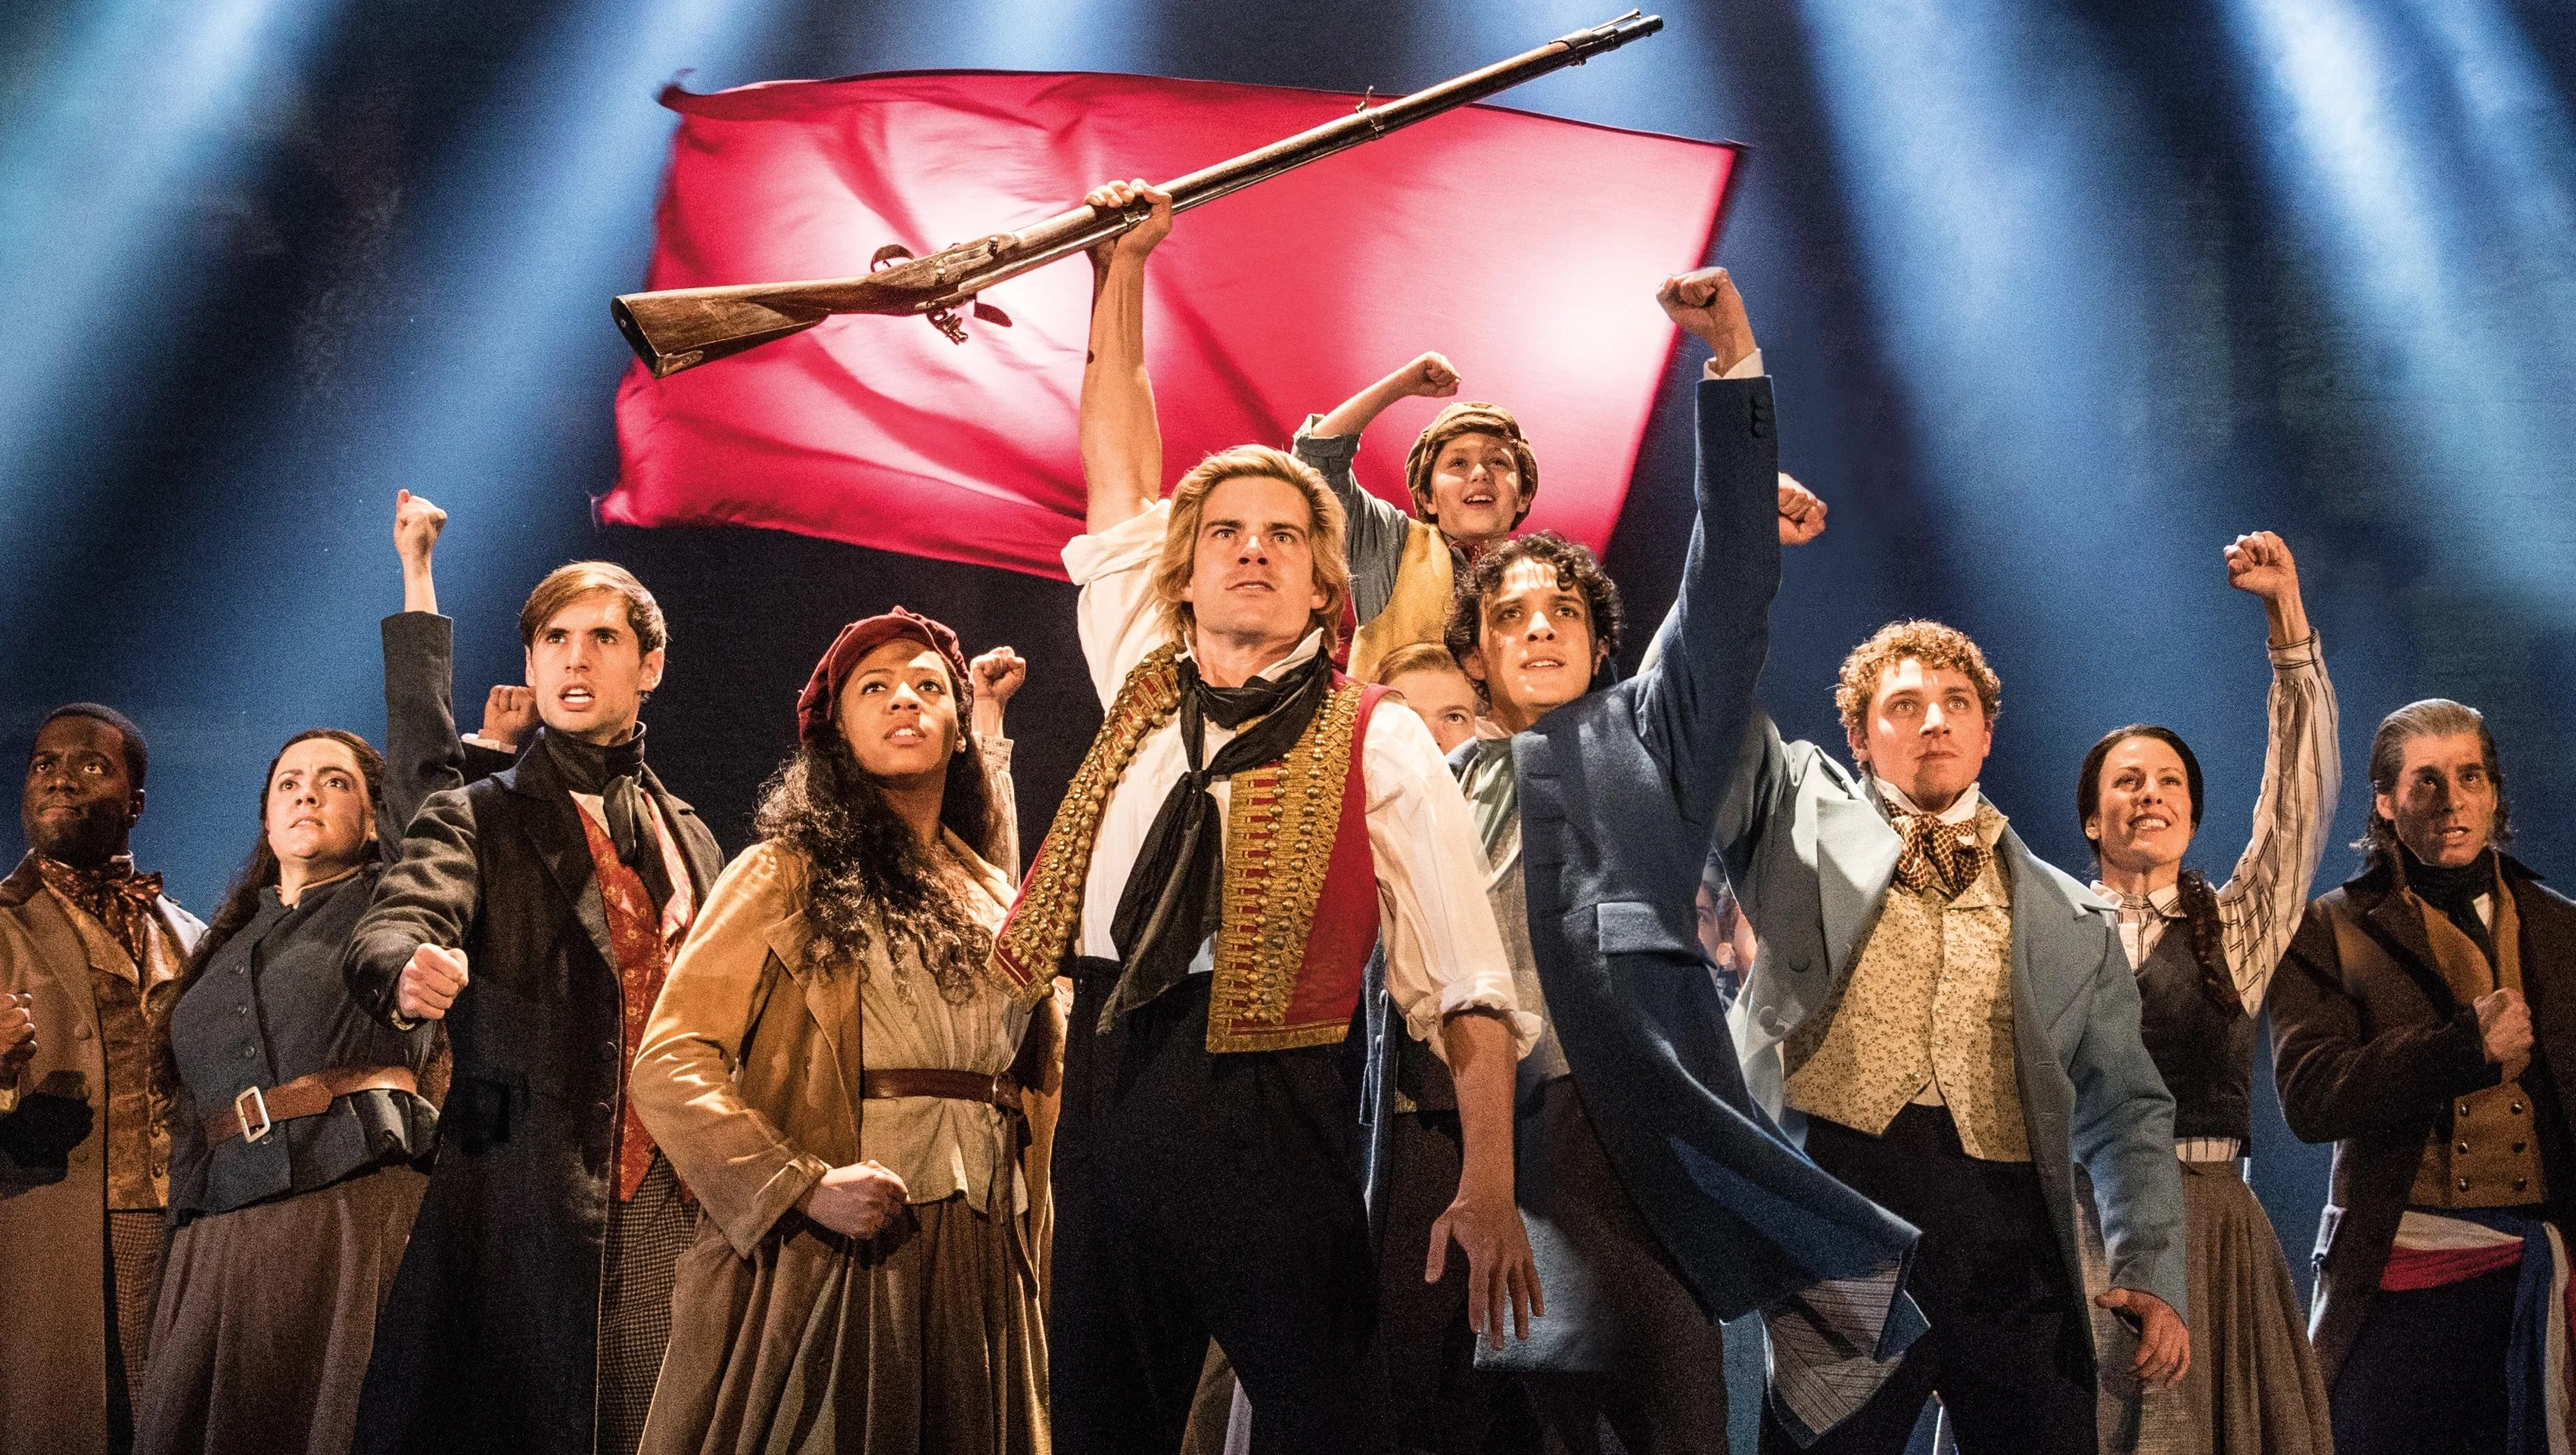 Les Miserables Tickets To Go On Sale Next Week